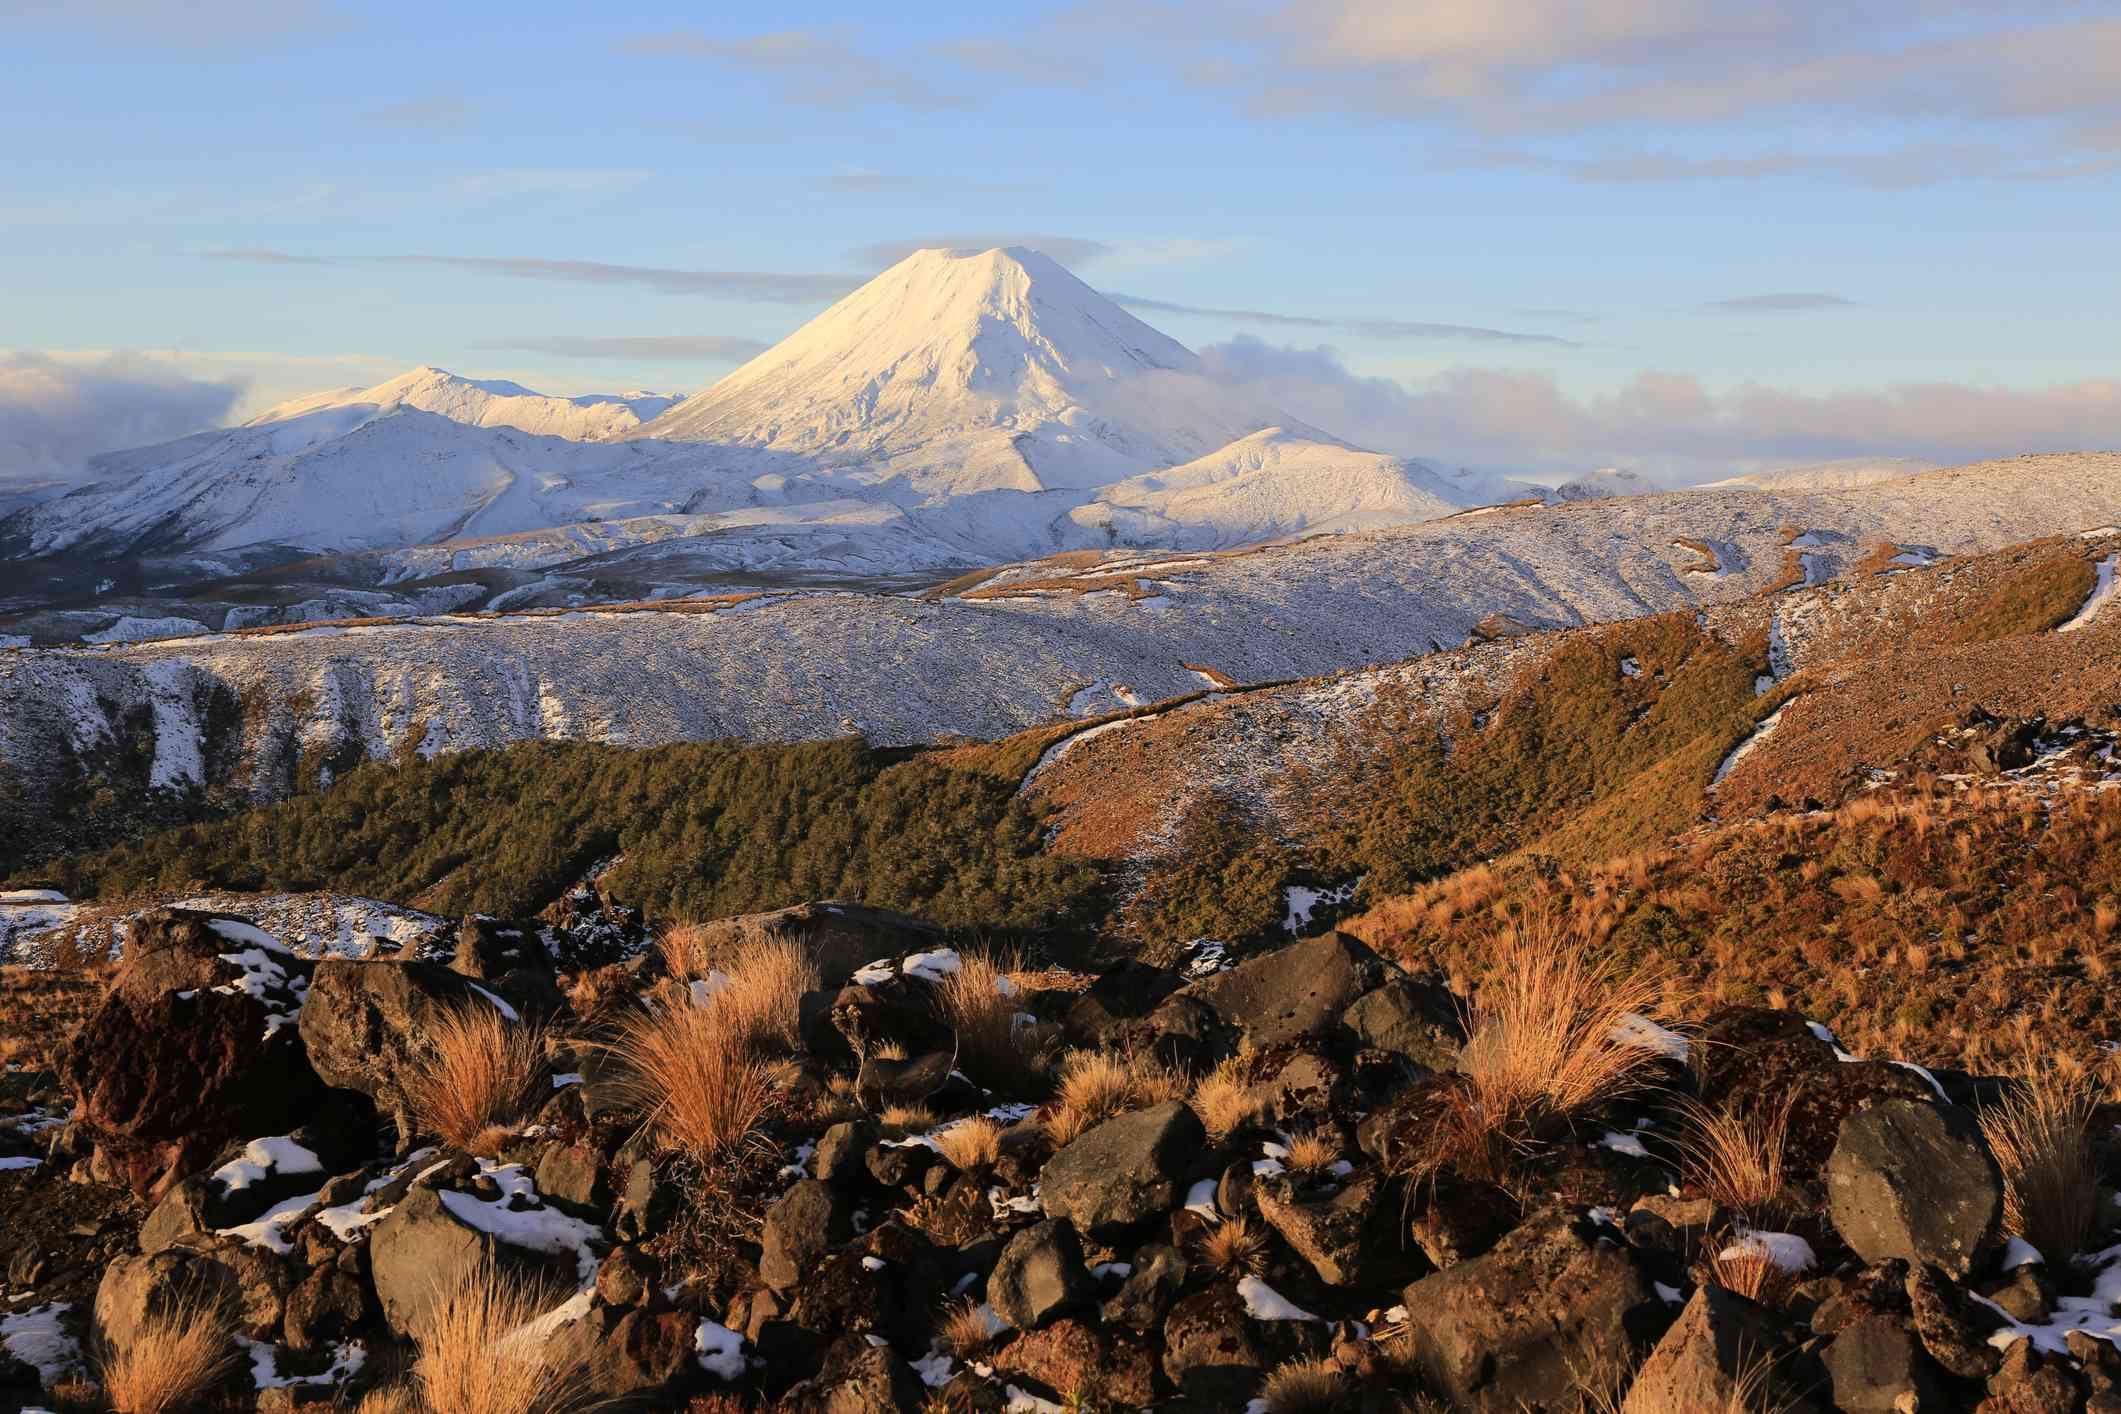 Active volcanoes of Mt Ngaruhoe and Mt Tongariro covered in snow from base of Mt Ruapehu, covered in rocks, Tongariro National Park, New Zealand